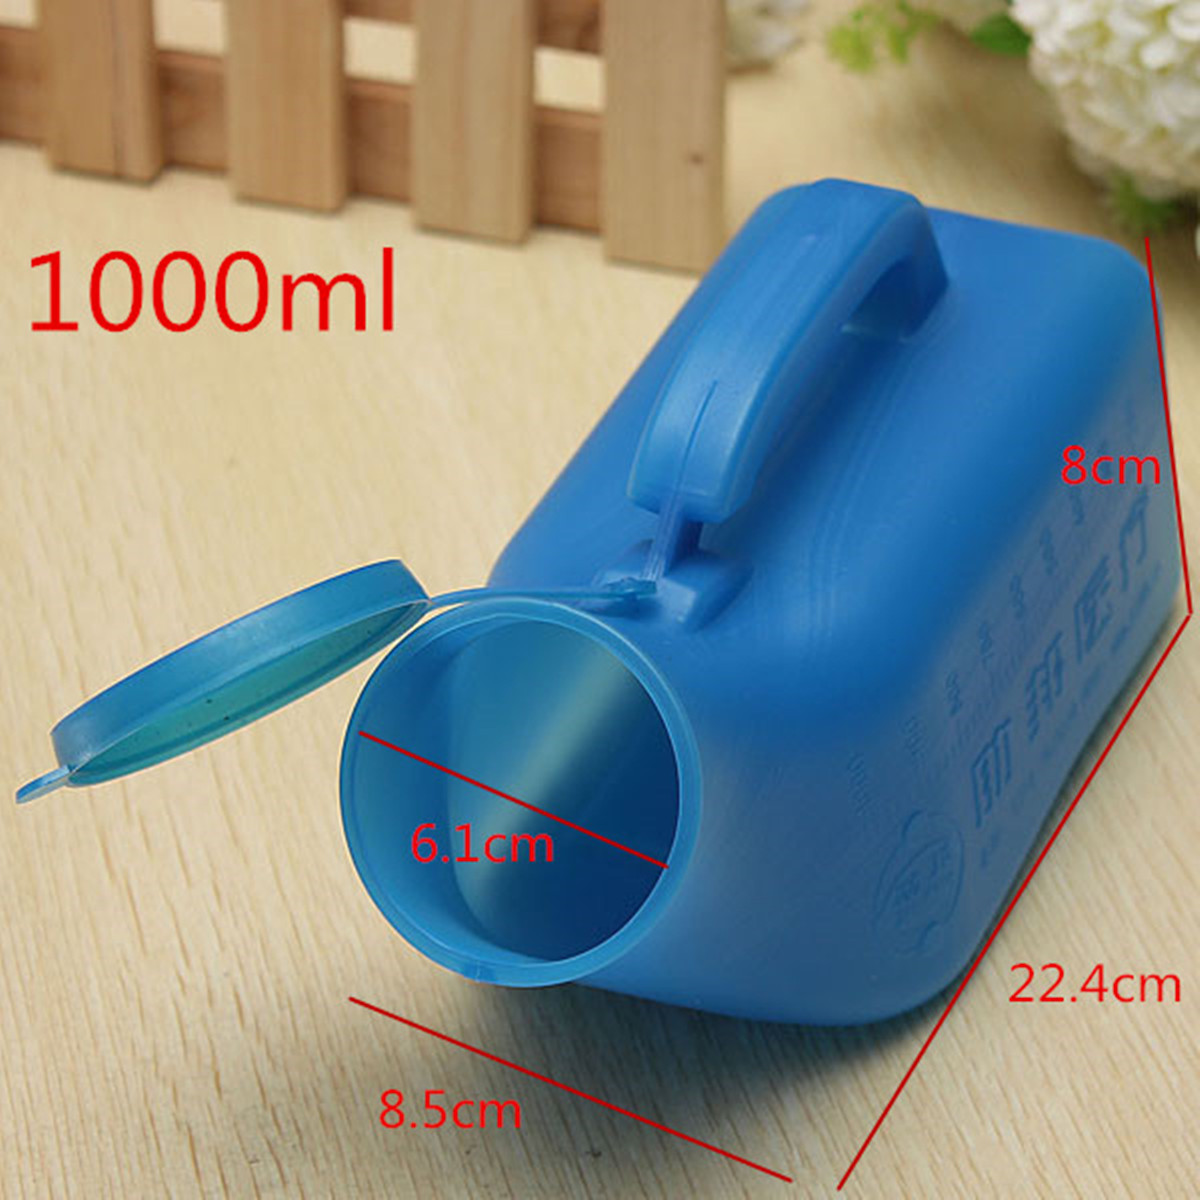 5e74496a8dd4 1000ml Men Male Urinal Pee Bottles Portable Toilet Camping Travel Tent  Convenience